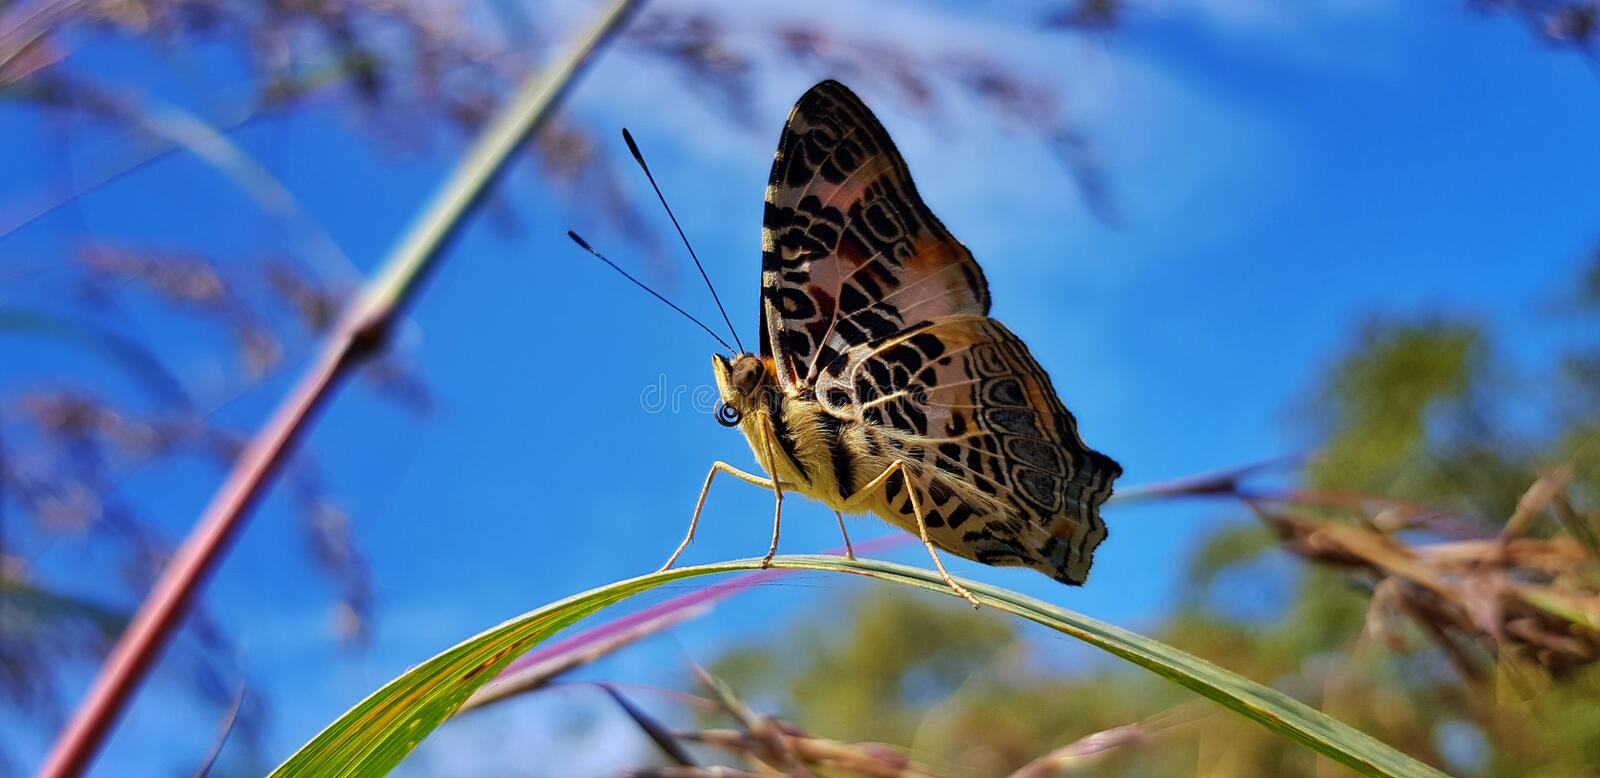 this is my favourit photos and moment because the butterfly not scary when i take from my hand stock image